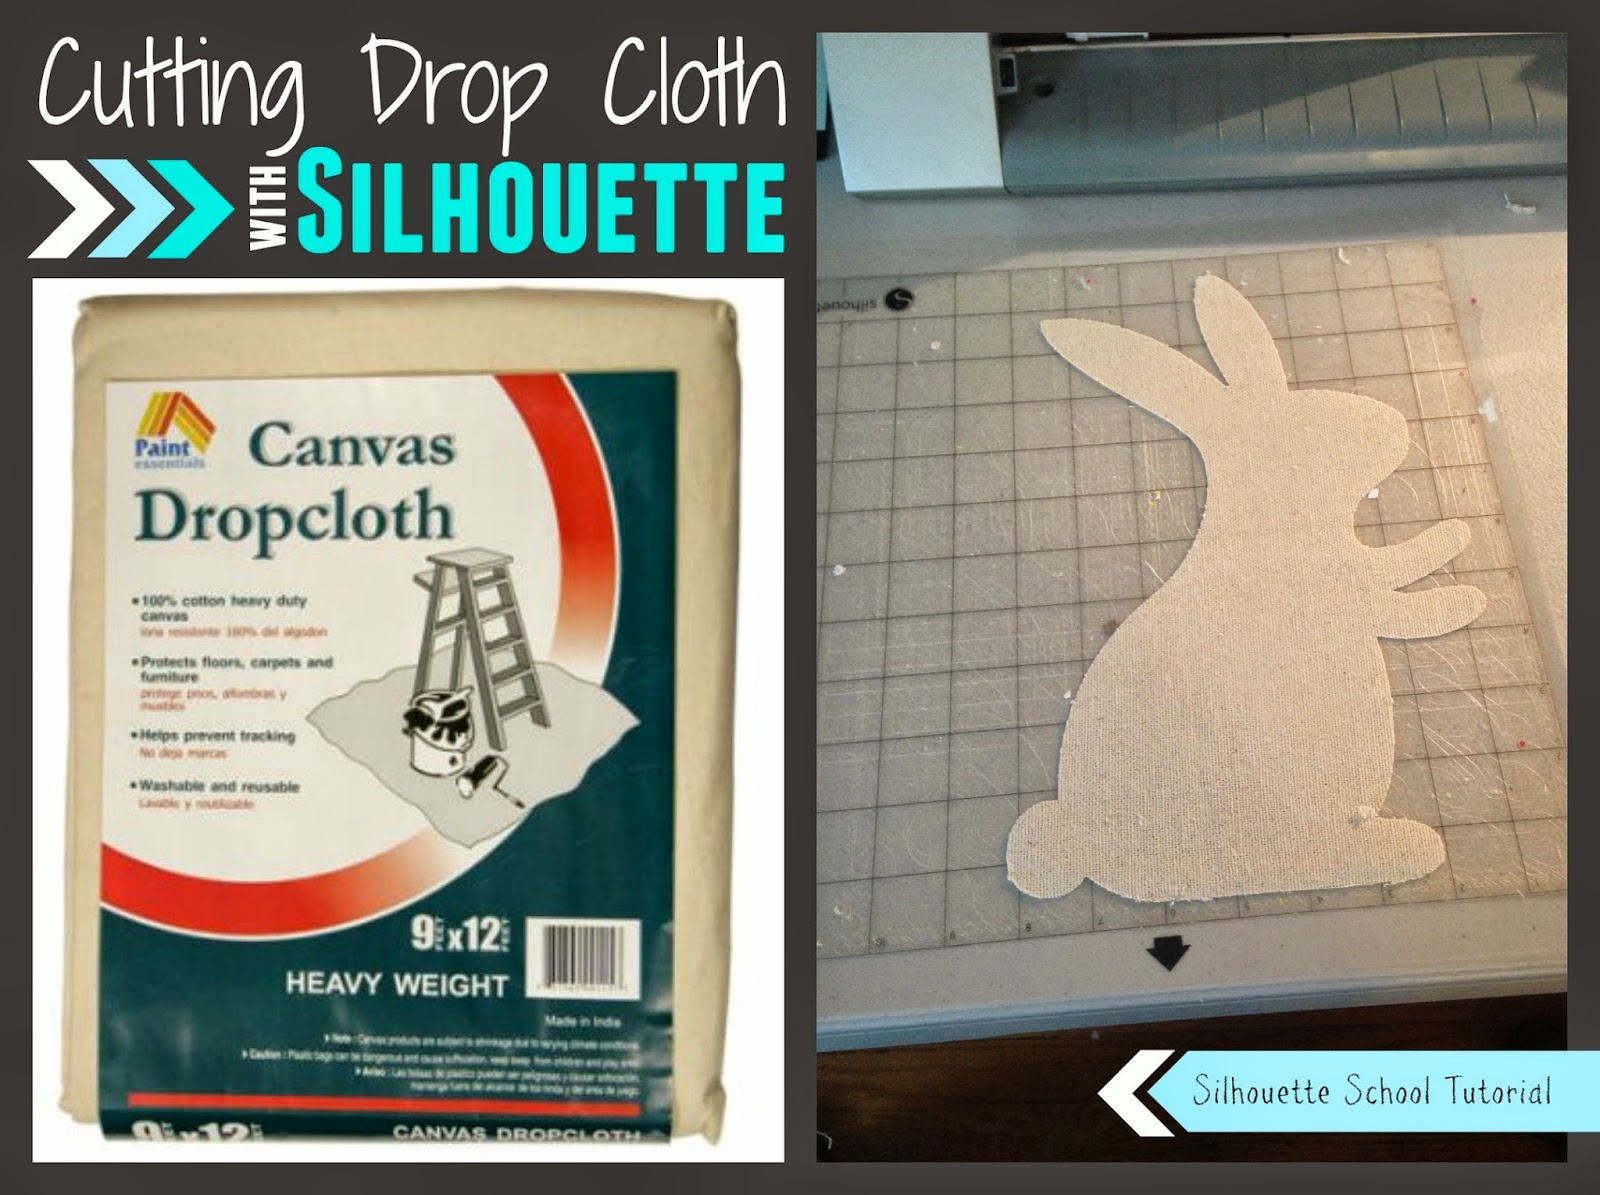 Silhouette Cameo, cut drop cloth, Silhouette tutorial